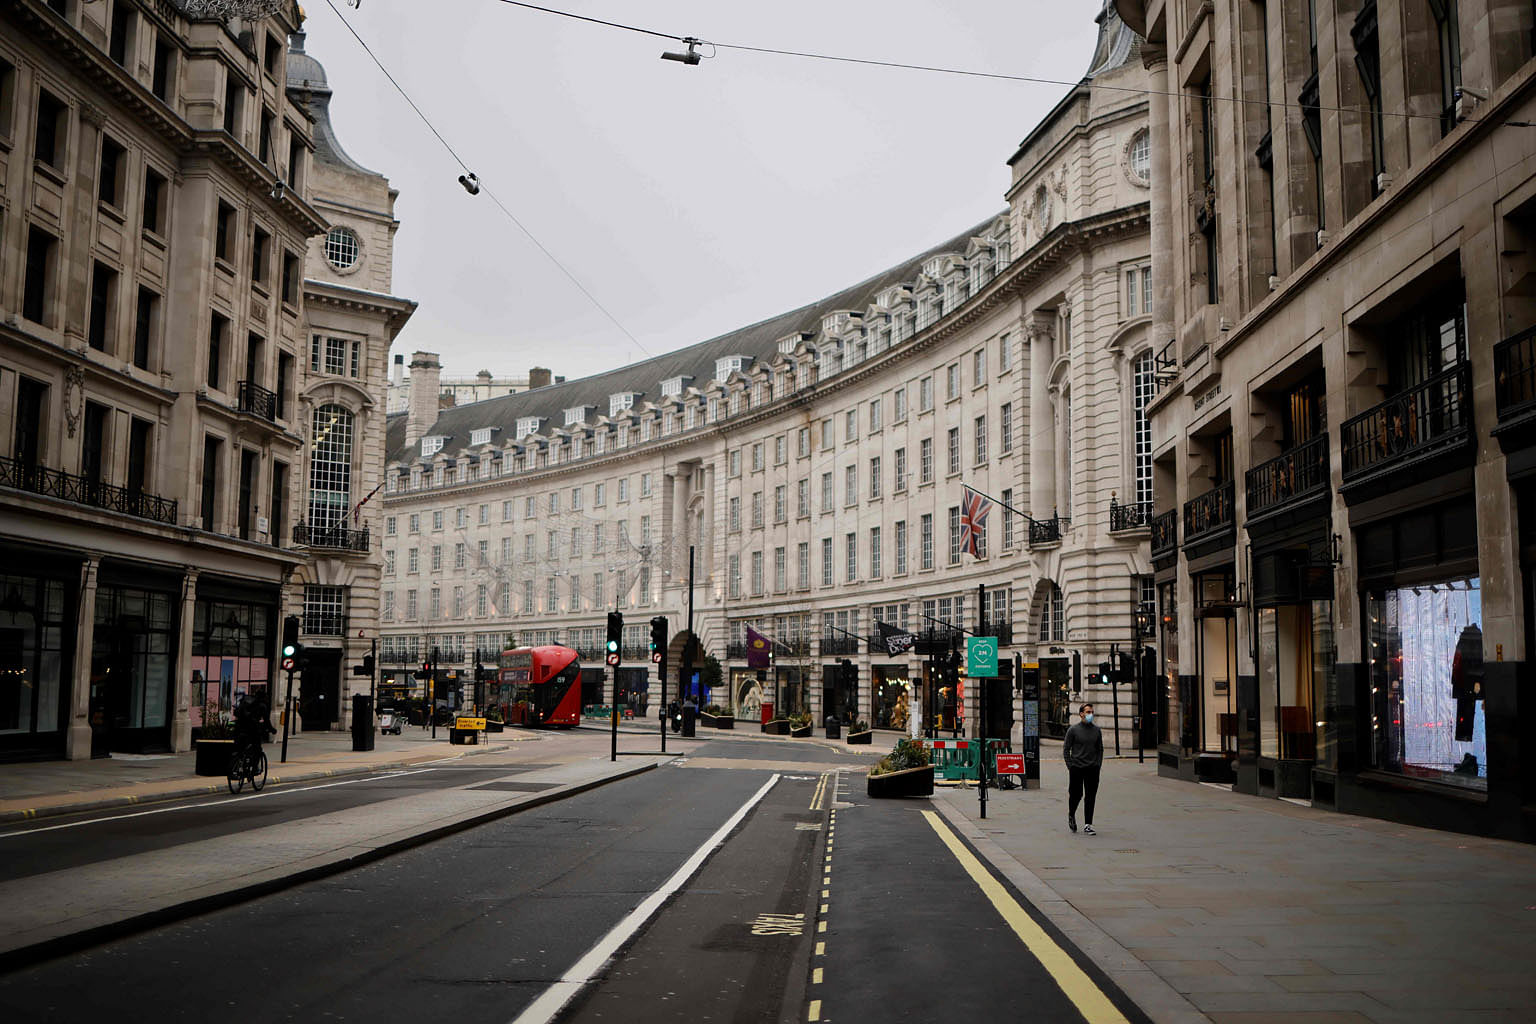 Regent Street, a major shopping area in London, almost deserted on Friday amid a national lockdown in Britain that began last Tuesday. Schools were also closed for face-to-face learning, except to the children of key workers and vulnerable students,